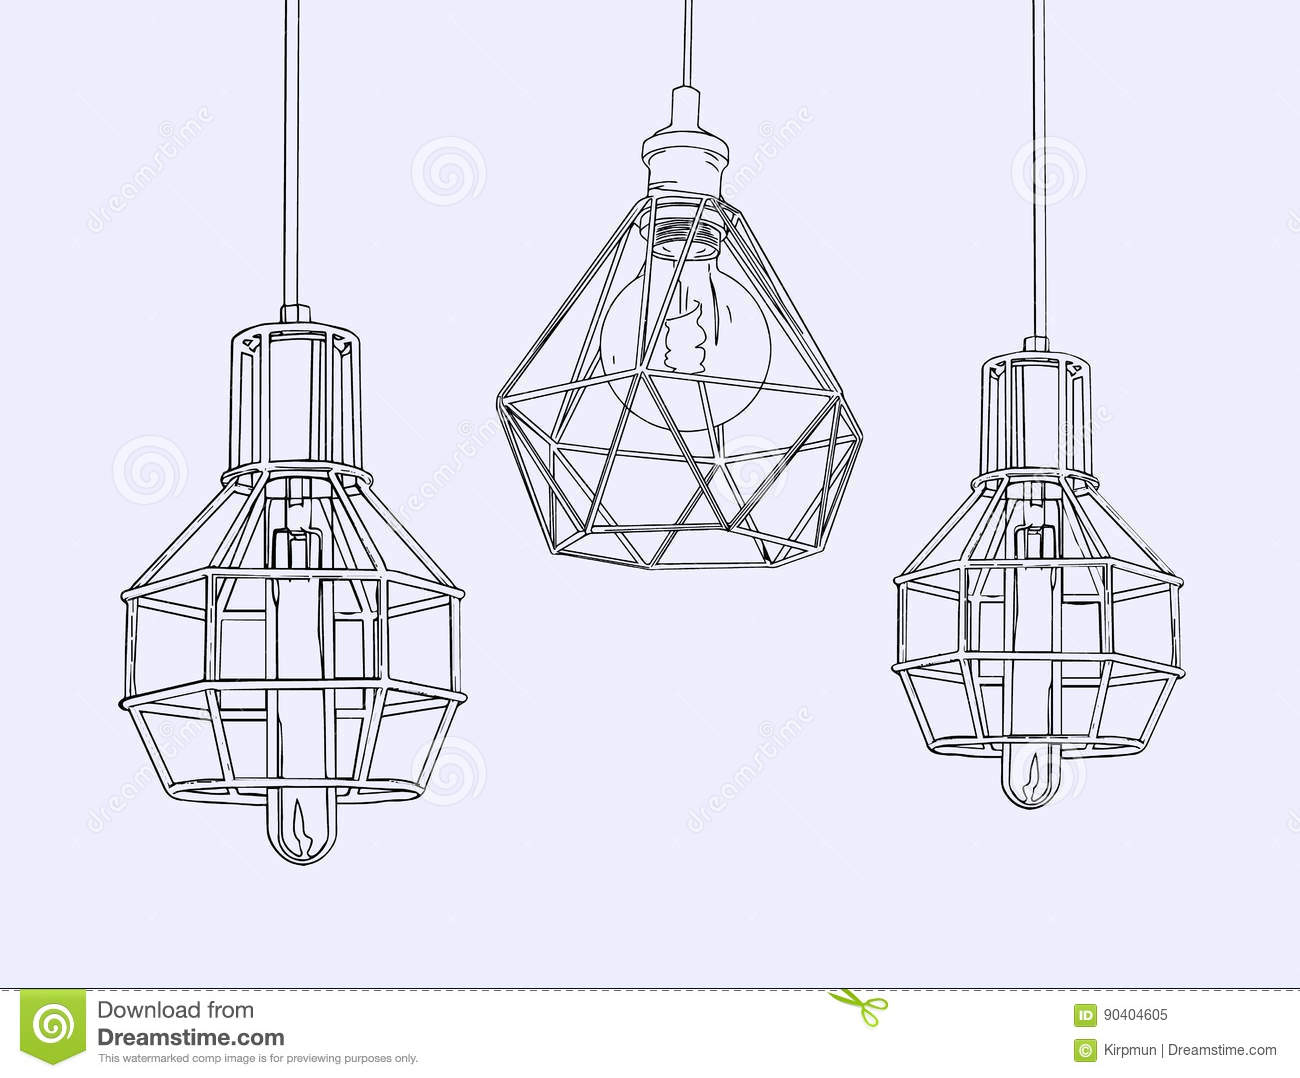 Download Collection Of Vintage Symbols Light Bulbs And LampsEdison Stock Vector